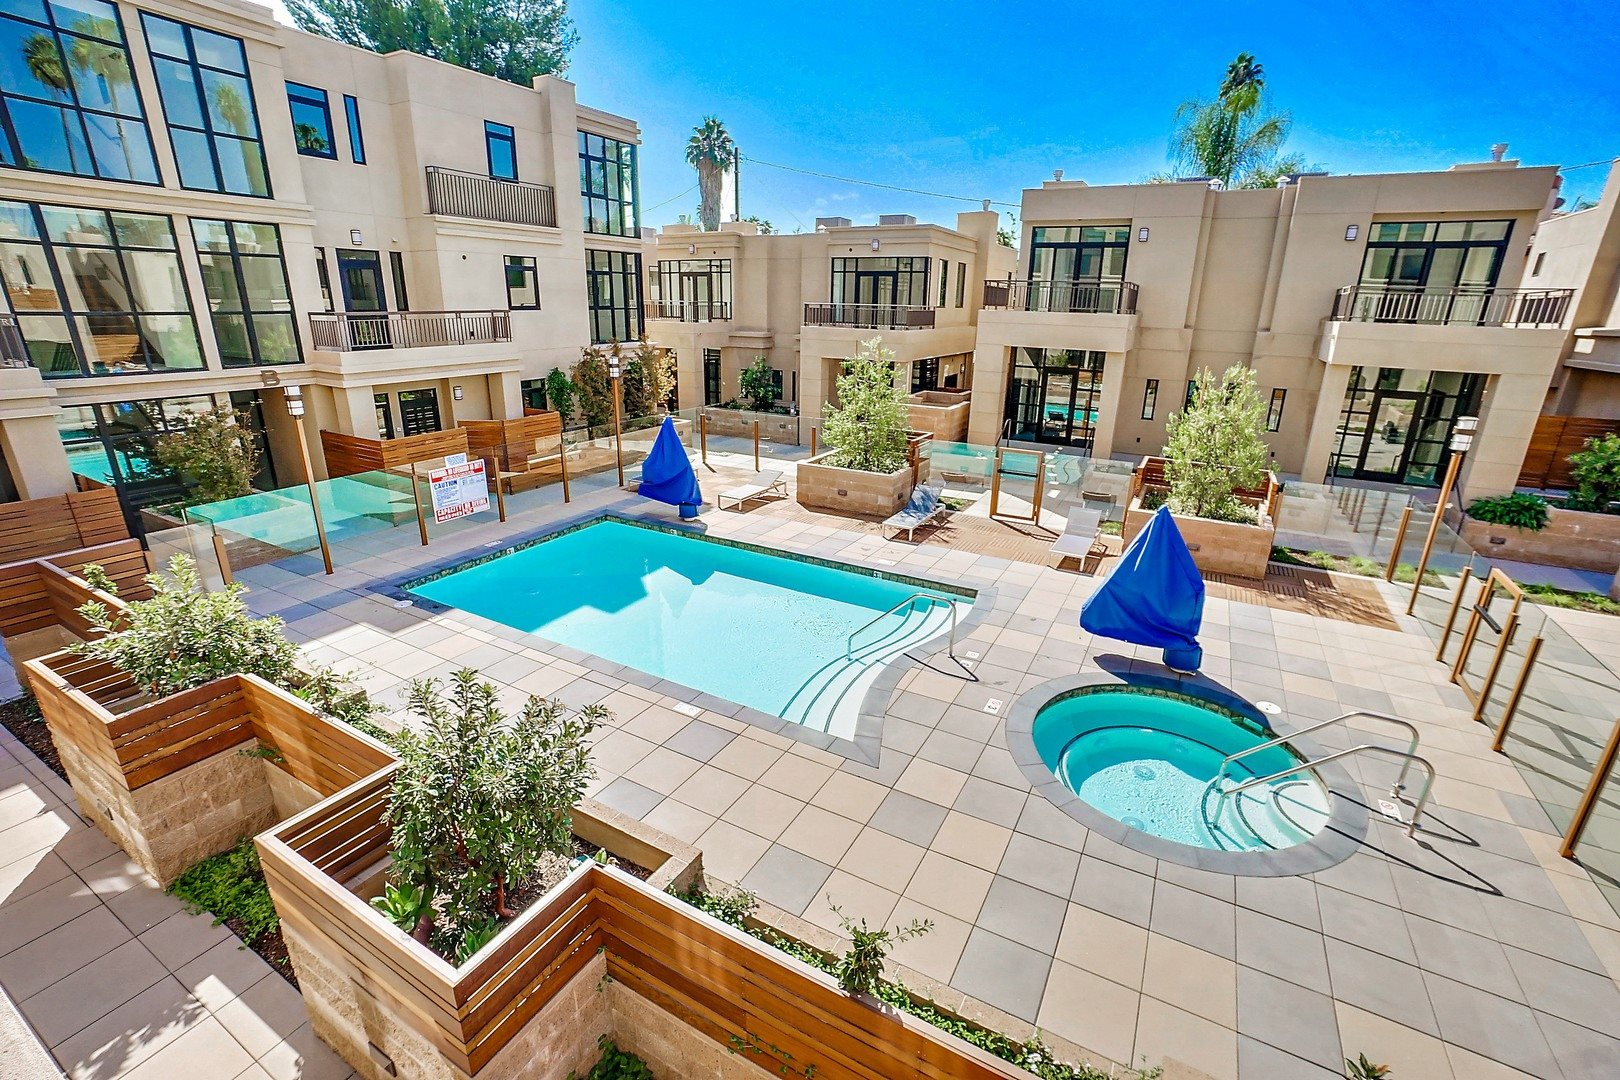 Apartments in Tarzana - The Residences at Village Walk Pool